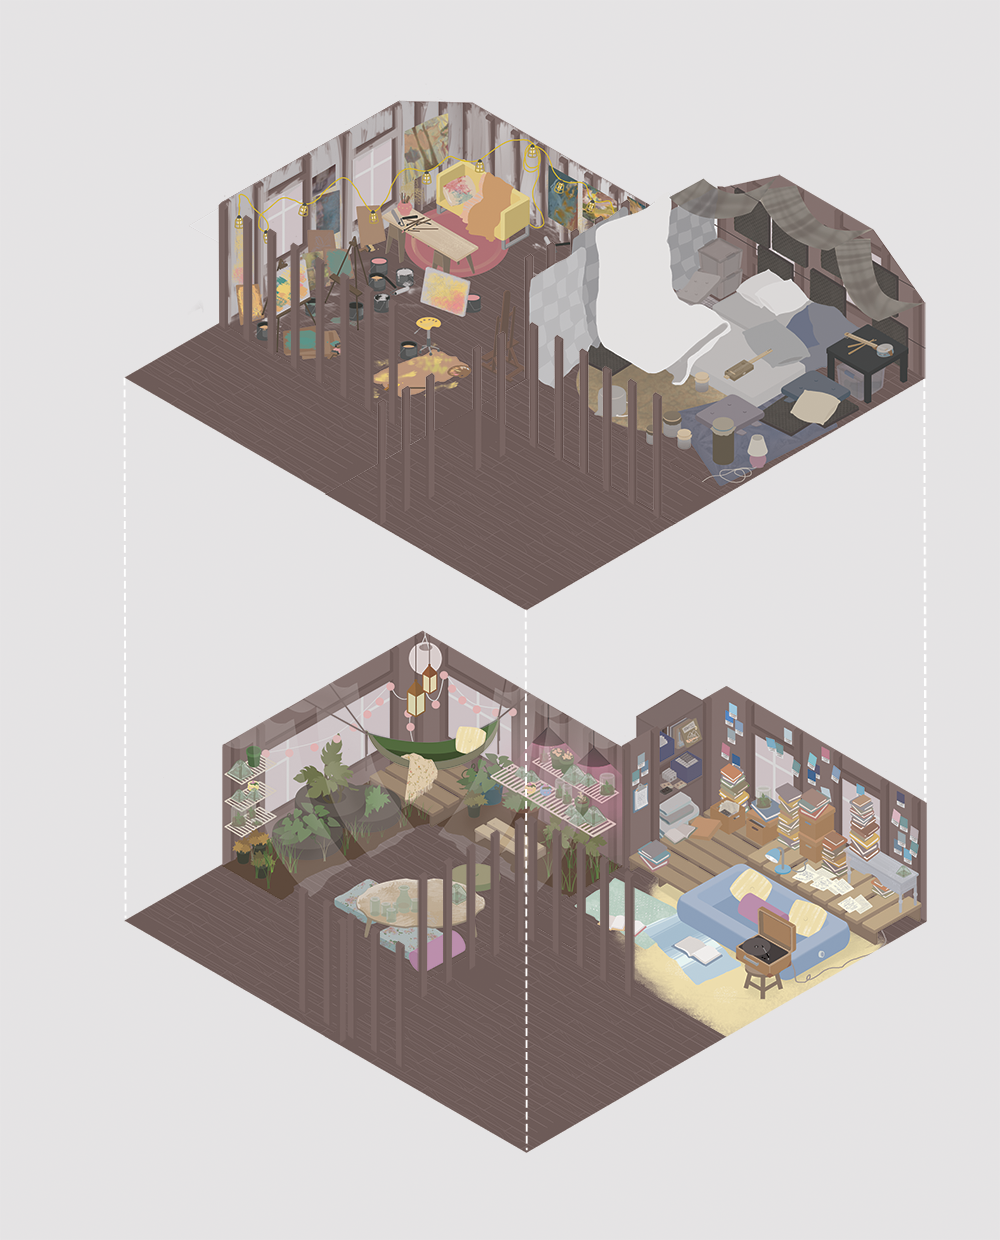 isometric views made in Photoshop